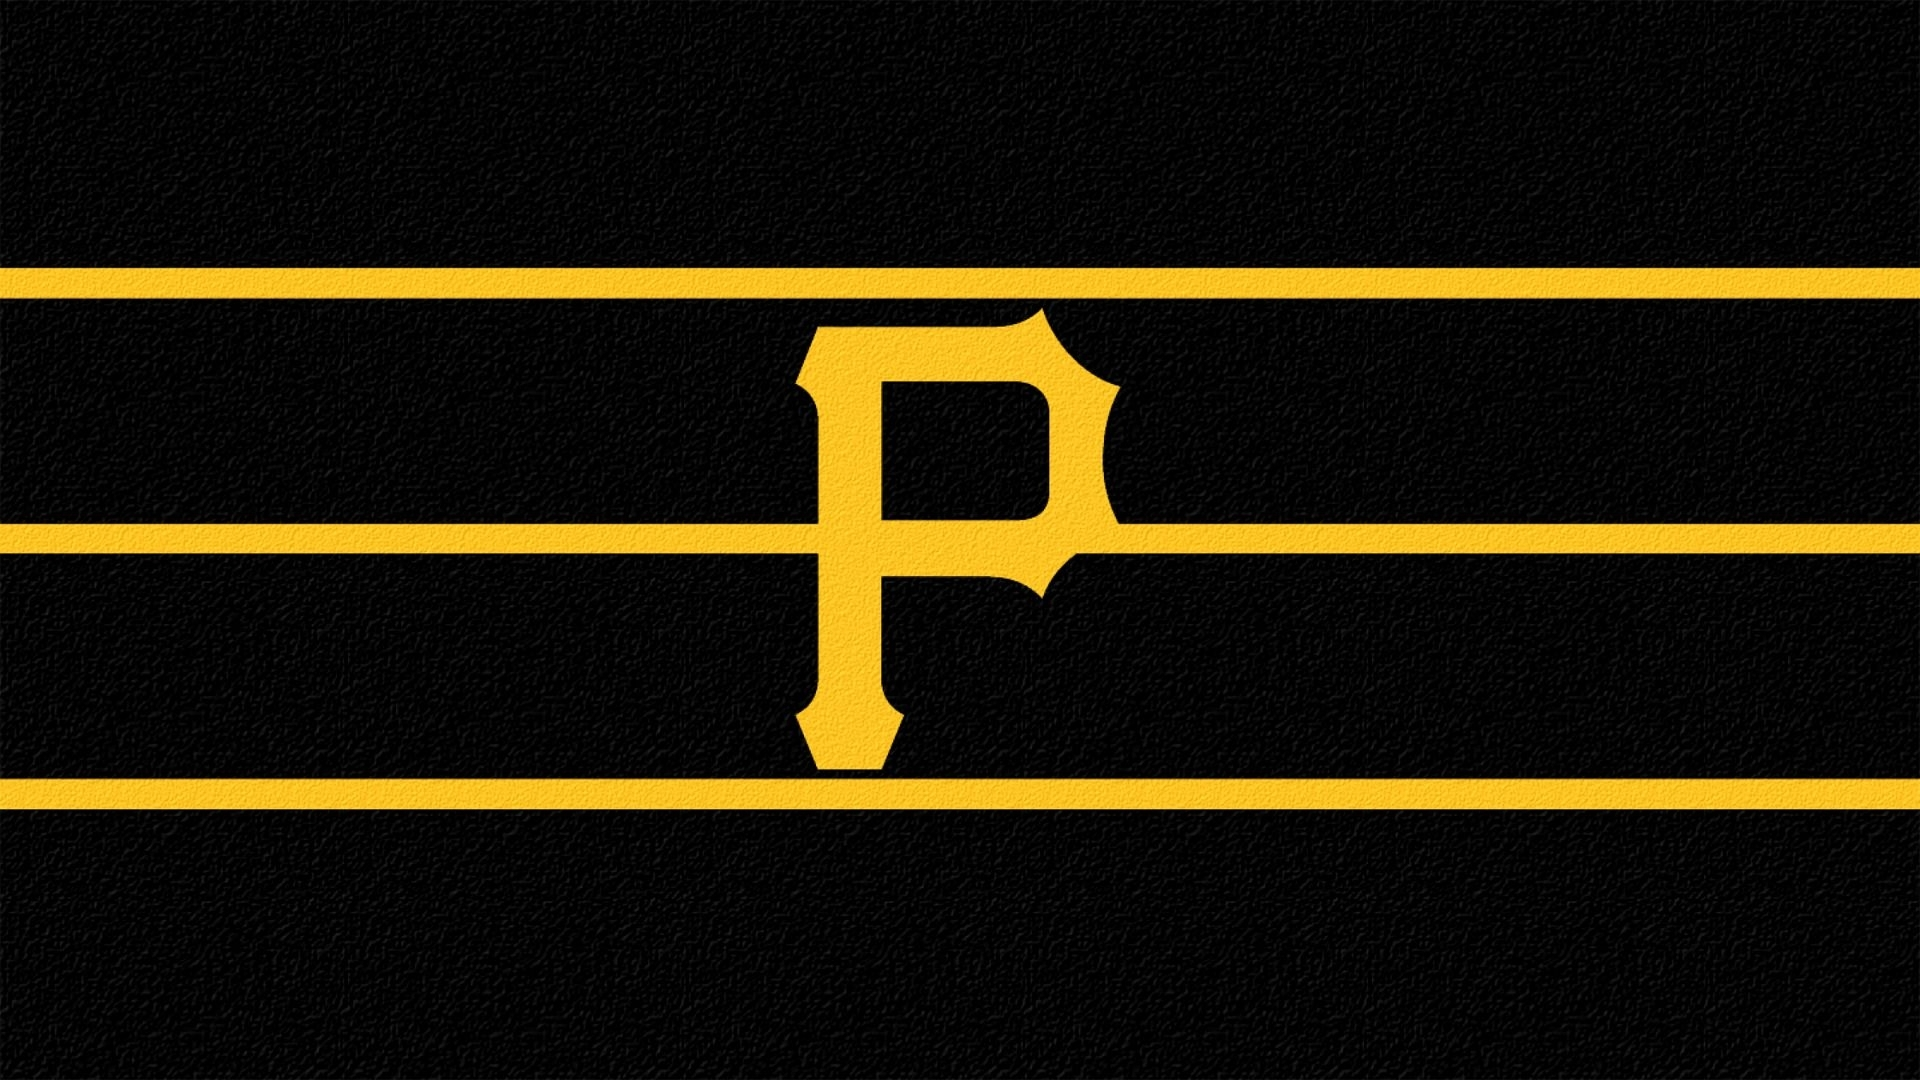 pittsburgh pirates wallpapers - wallpaper cave